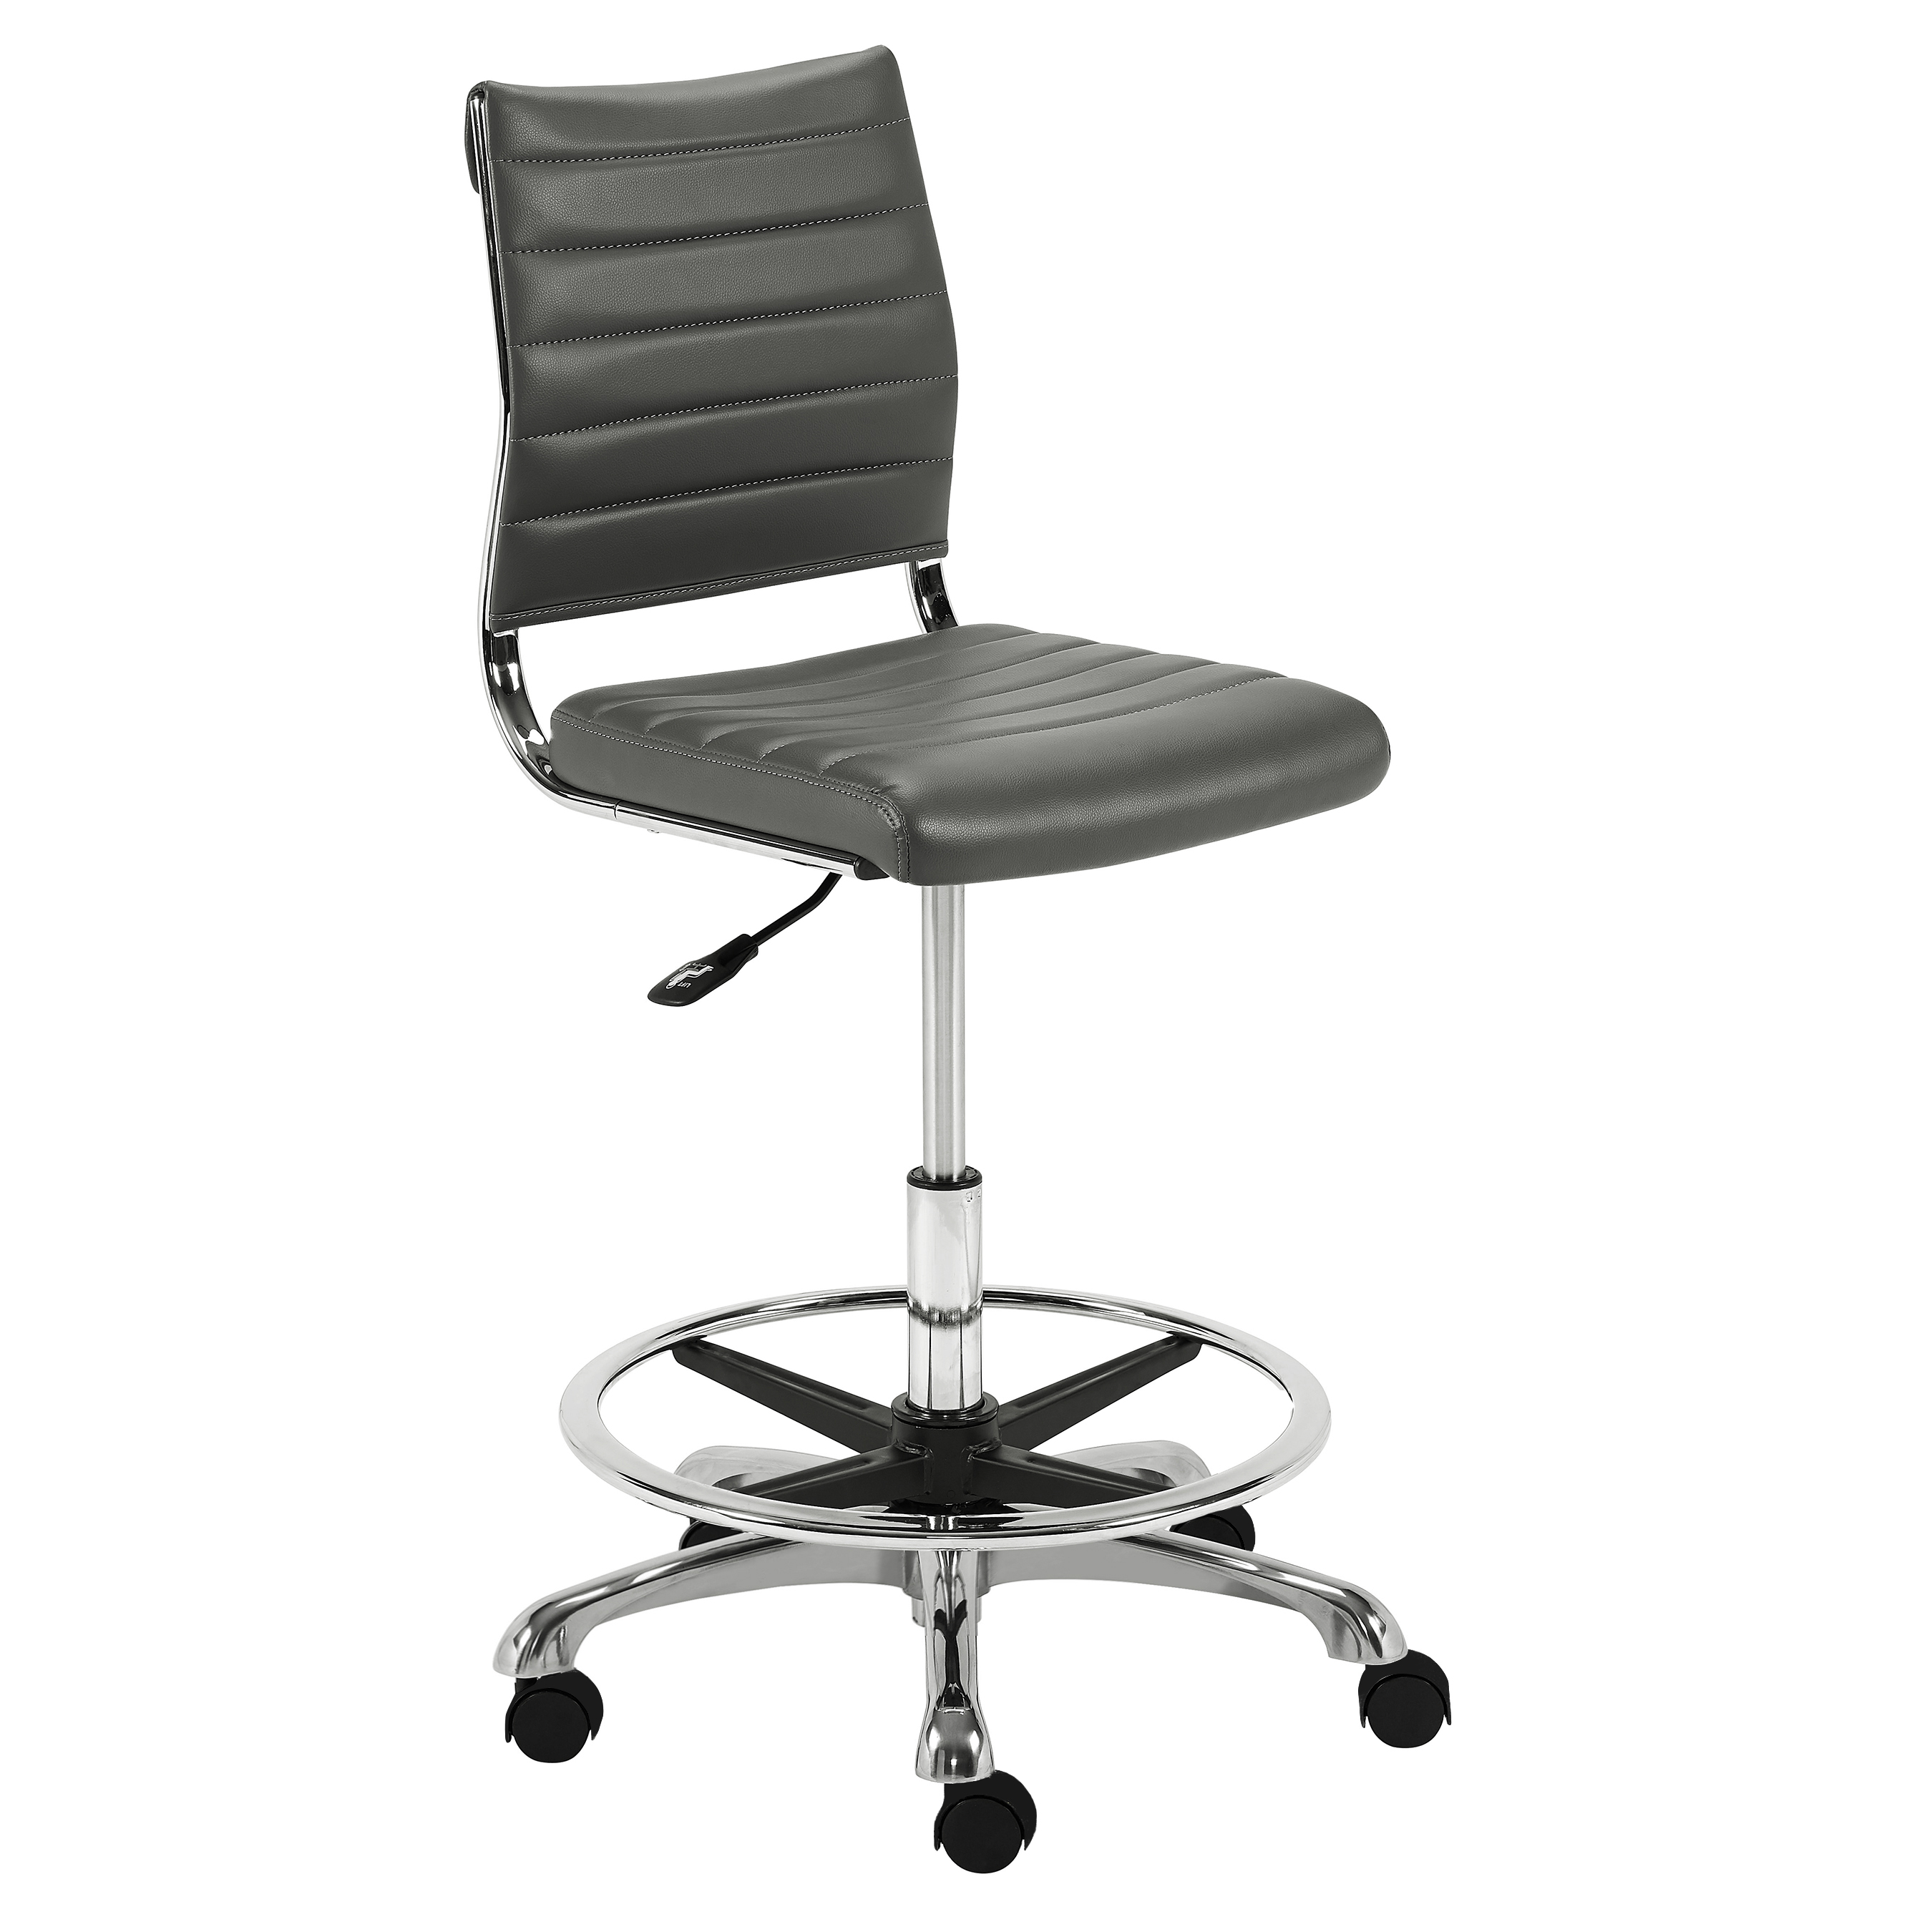 Tremendous Axel Adjustable Height Drafting Stool Euro Style Dailytribune Chair Design For Home Dailytribuneorg